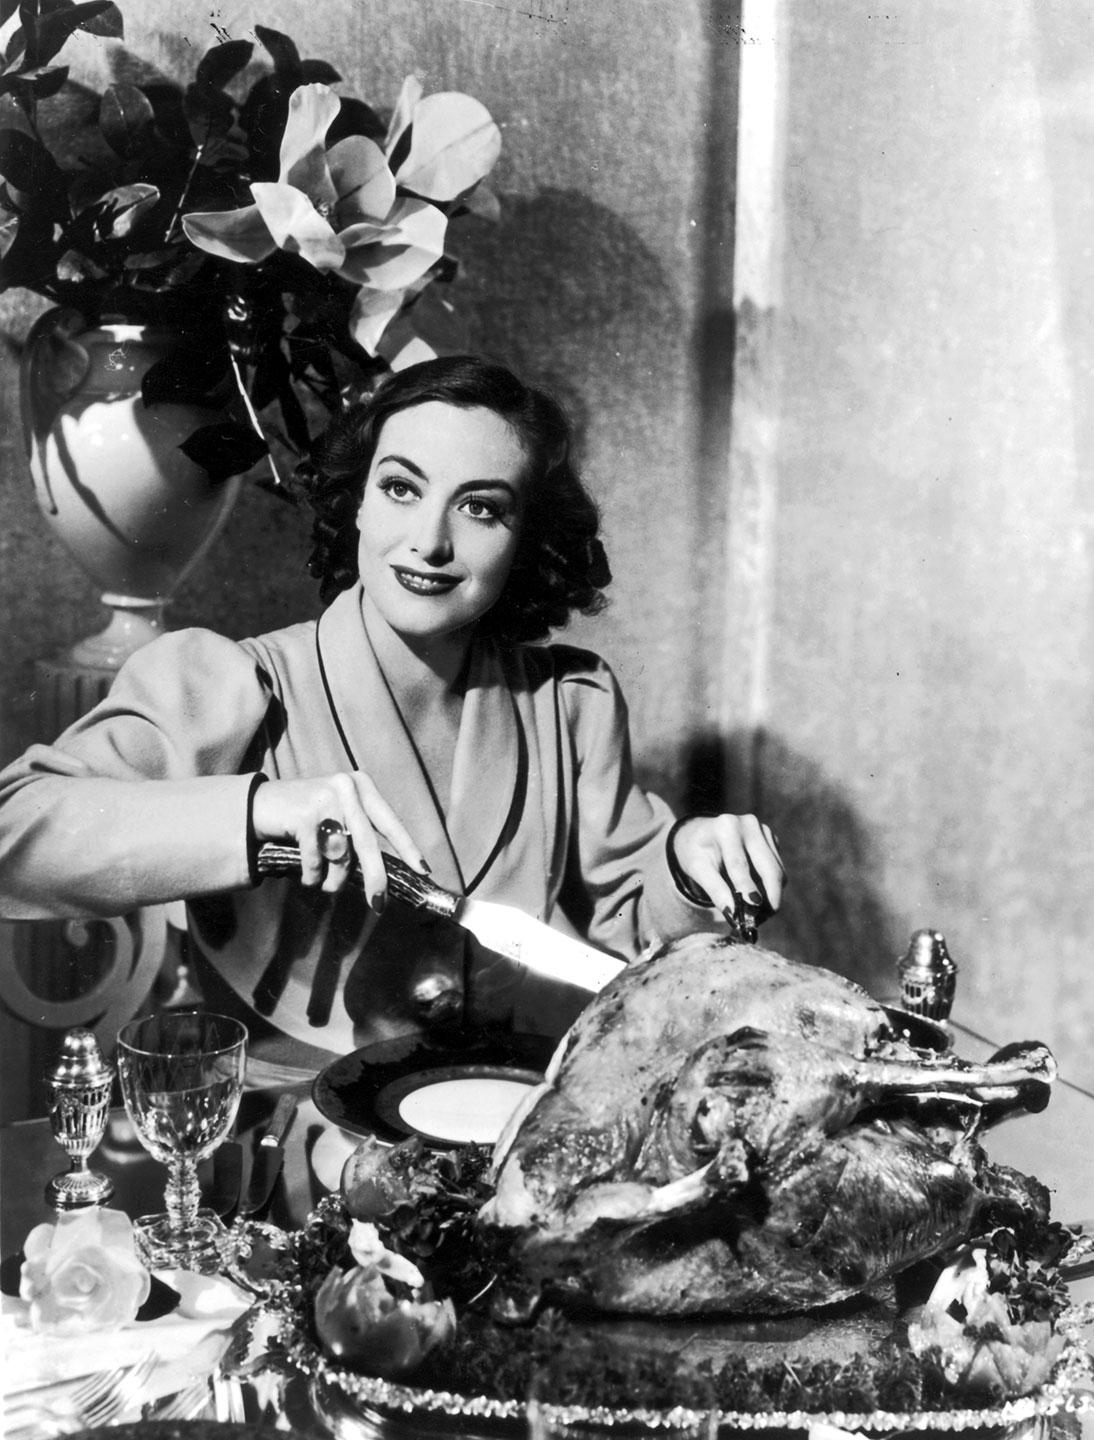 RT @vfhollywood: Happy Thanksgiving! Did your turkey turn out as beautiful as Joan Crawford's? http://t.co/LcMWOWjImZ http://t.co/ROHSoBGCV6